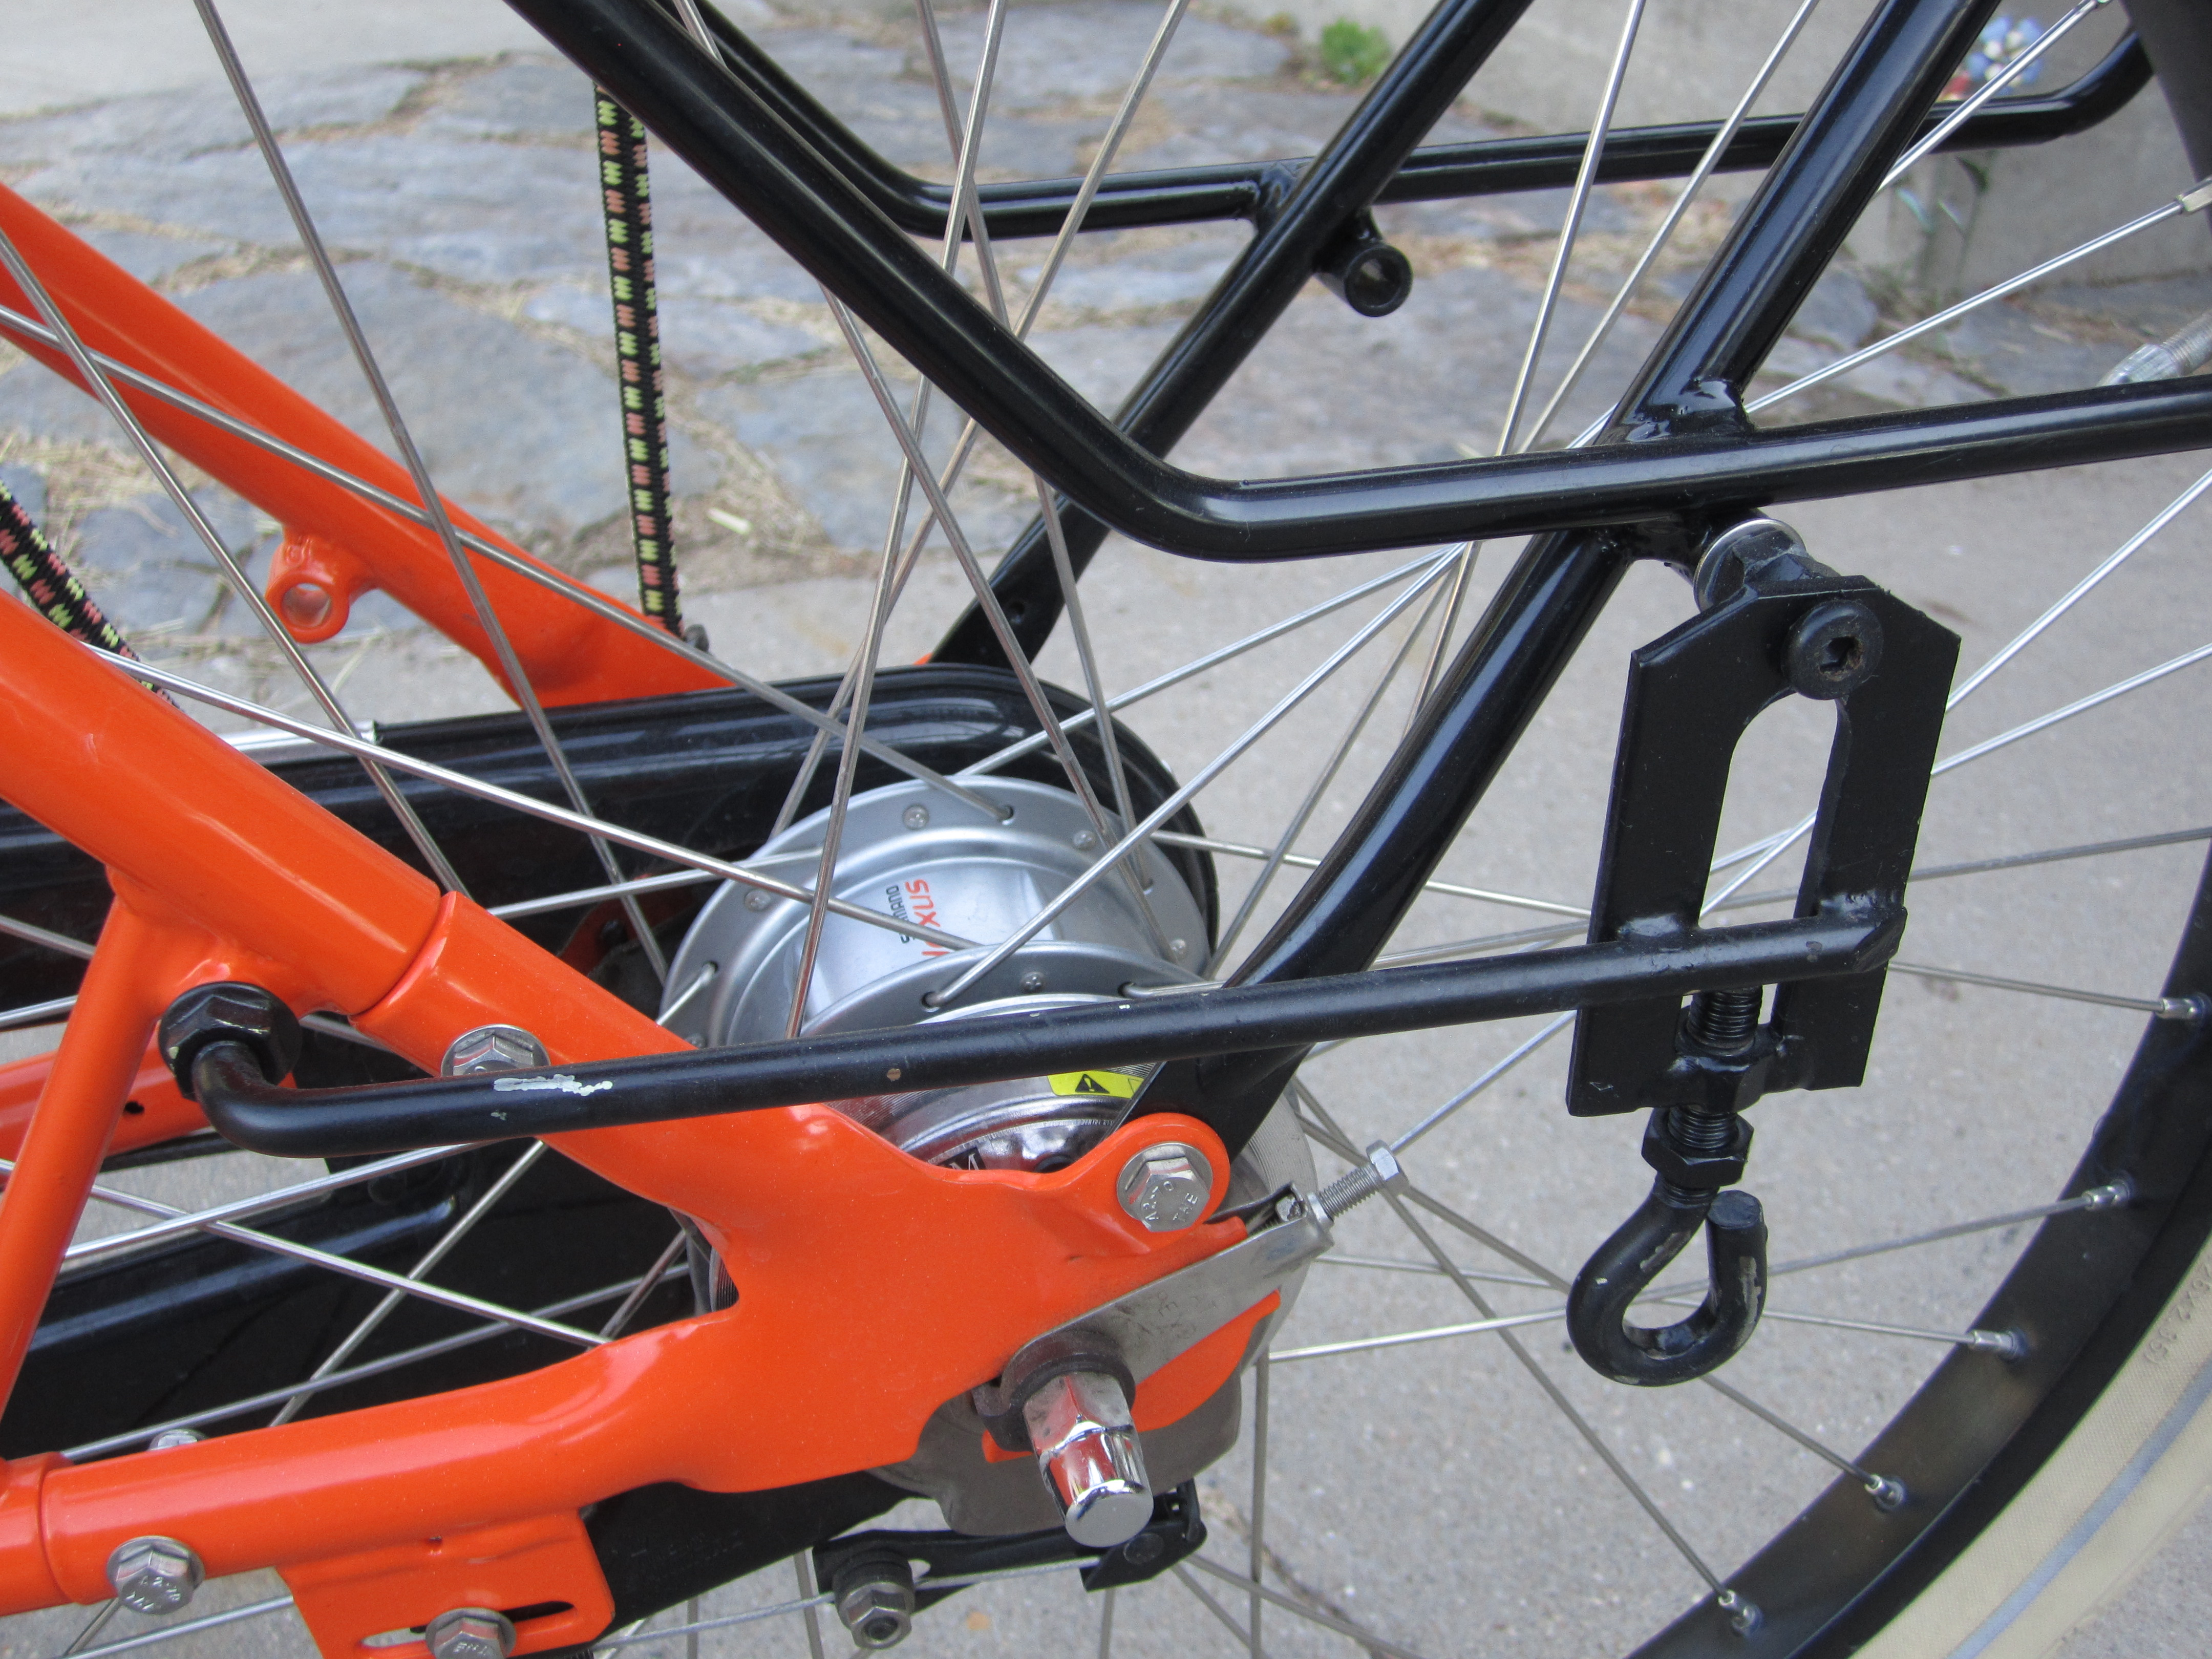 I Want To Build A Big Bike Trailer Bicycle Forum At Permies